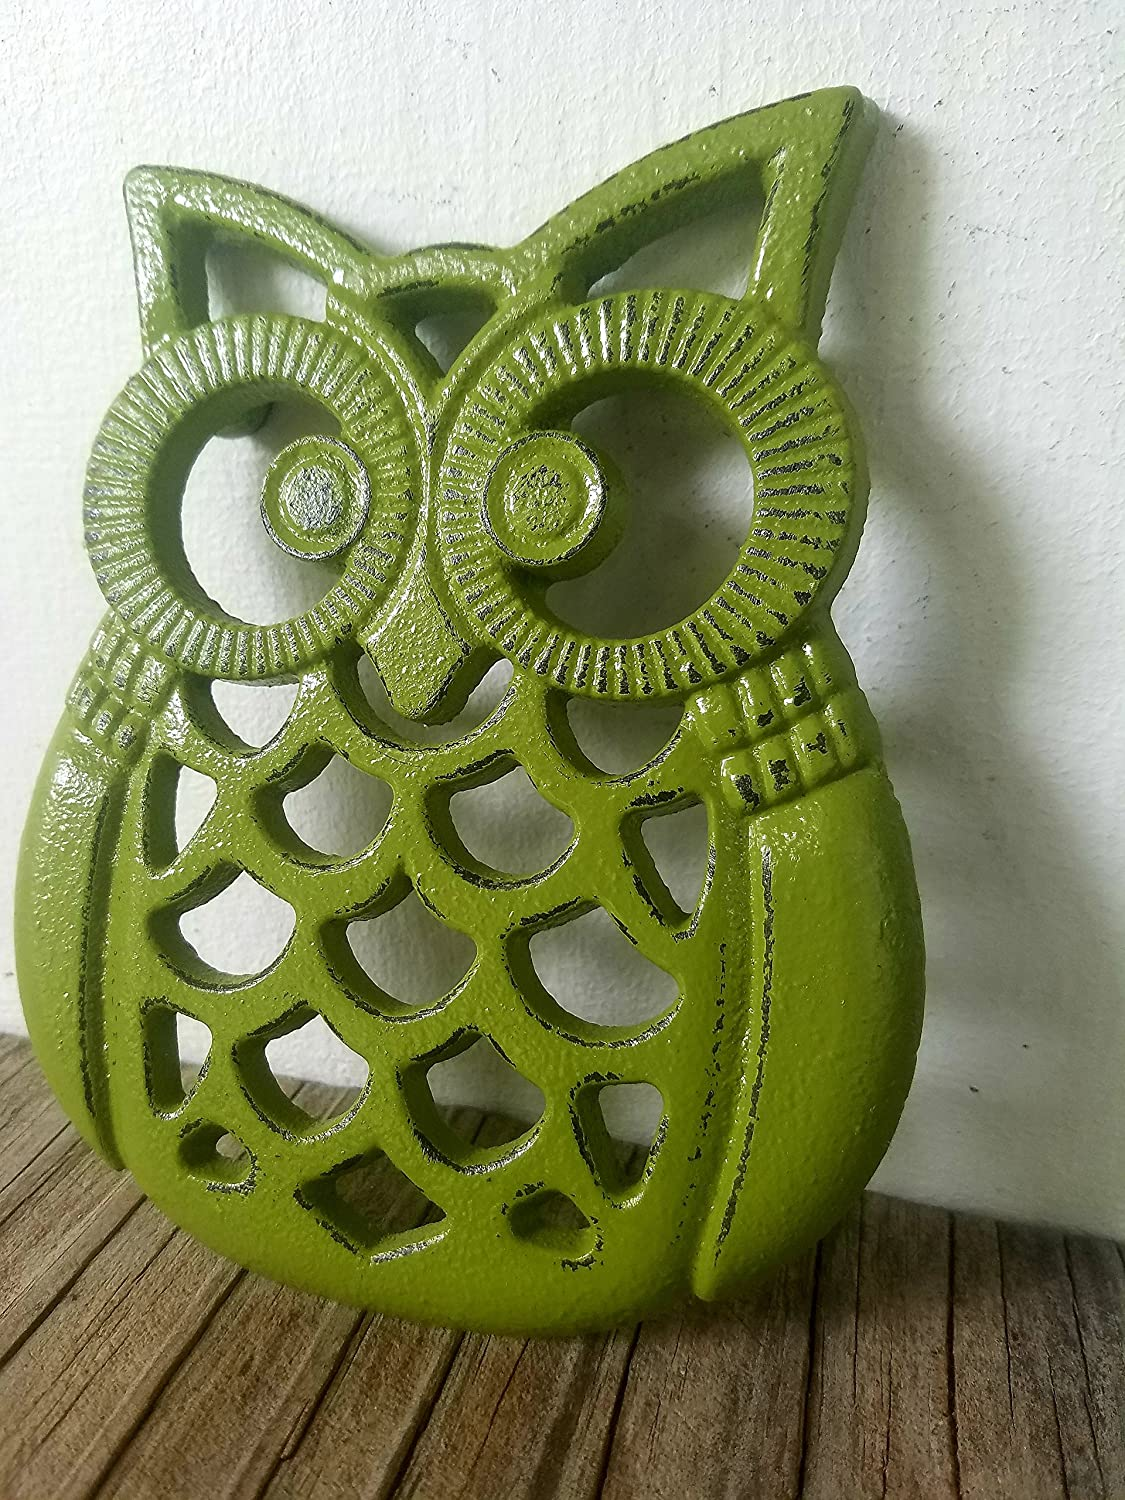 Olive green Heavy Duty Cast Iron Owl Kitchen Trivet – Rustic Woodland Animal Decor – Unique Housewarming Gift